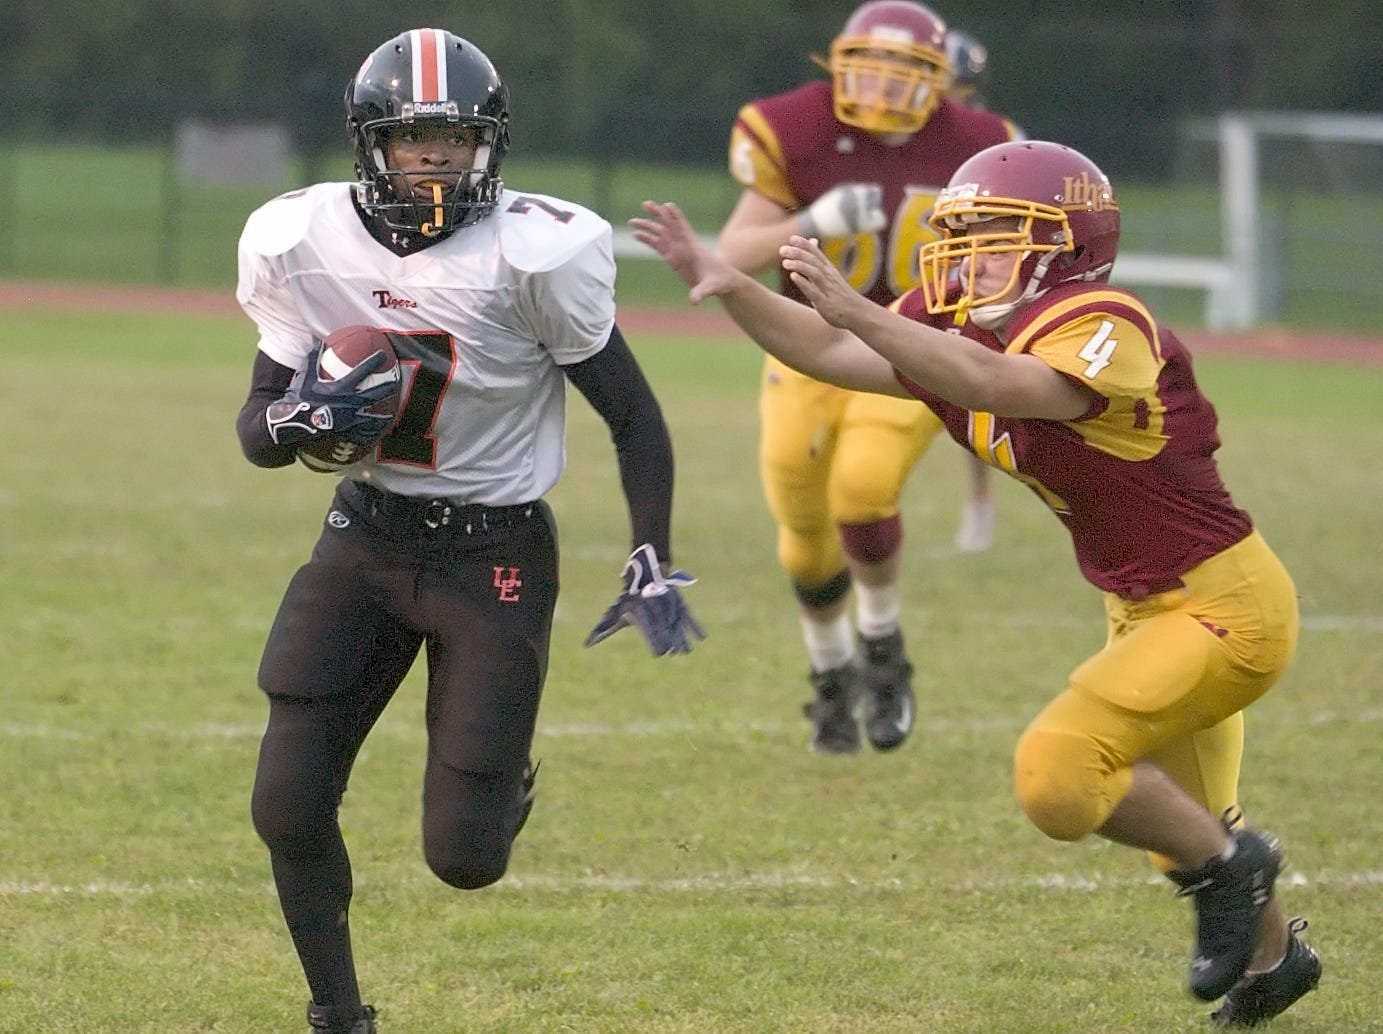 From 2006: Union Endicott's Jermaine Thomas, left, evades Ithaca High's Tim Sidle as he runs down field in the first quarter Friday in Ithaca.